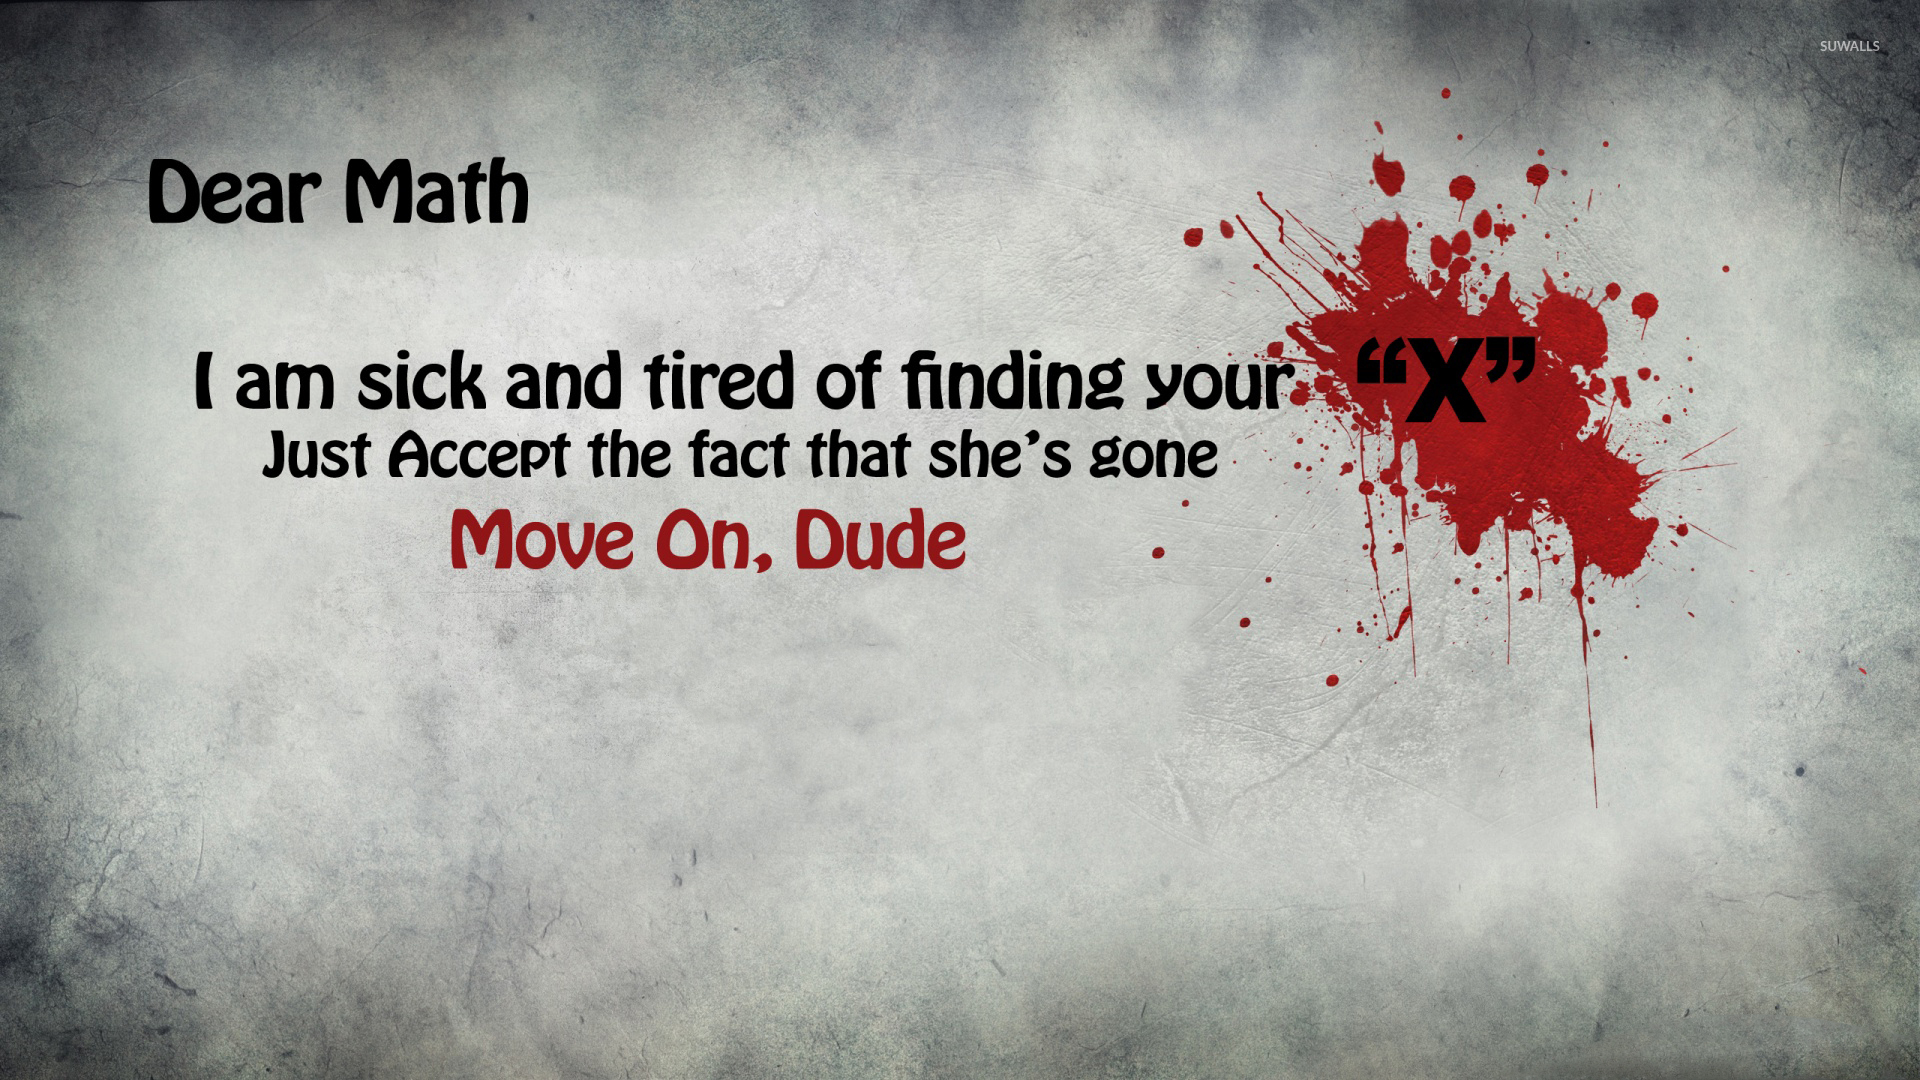 I Am Sick And Tired Of Finding Your X Wallpaper Quote Wallpapers